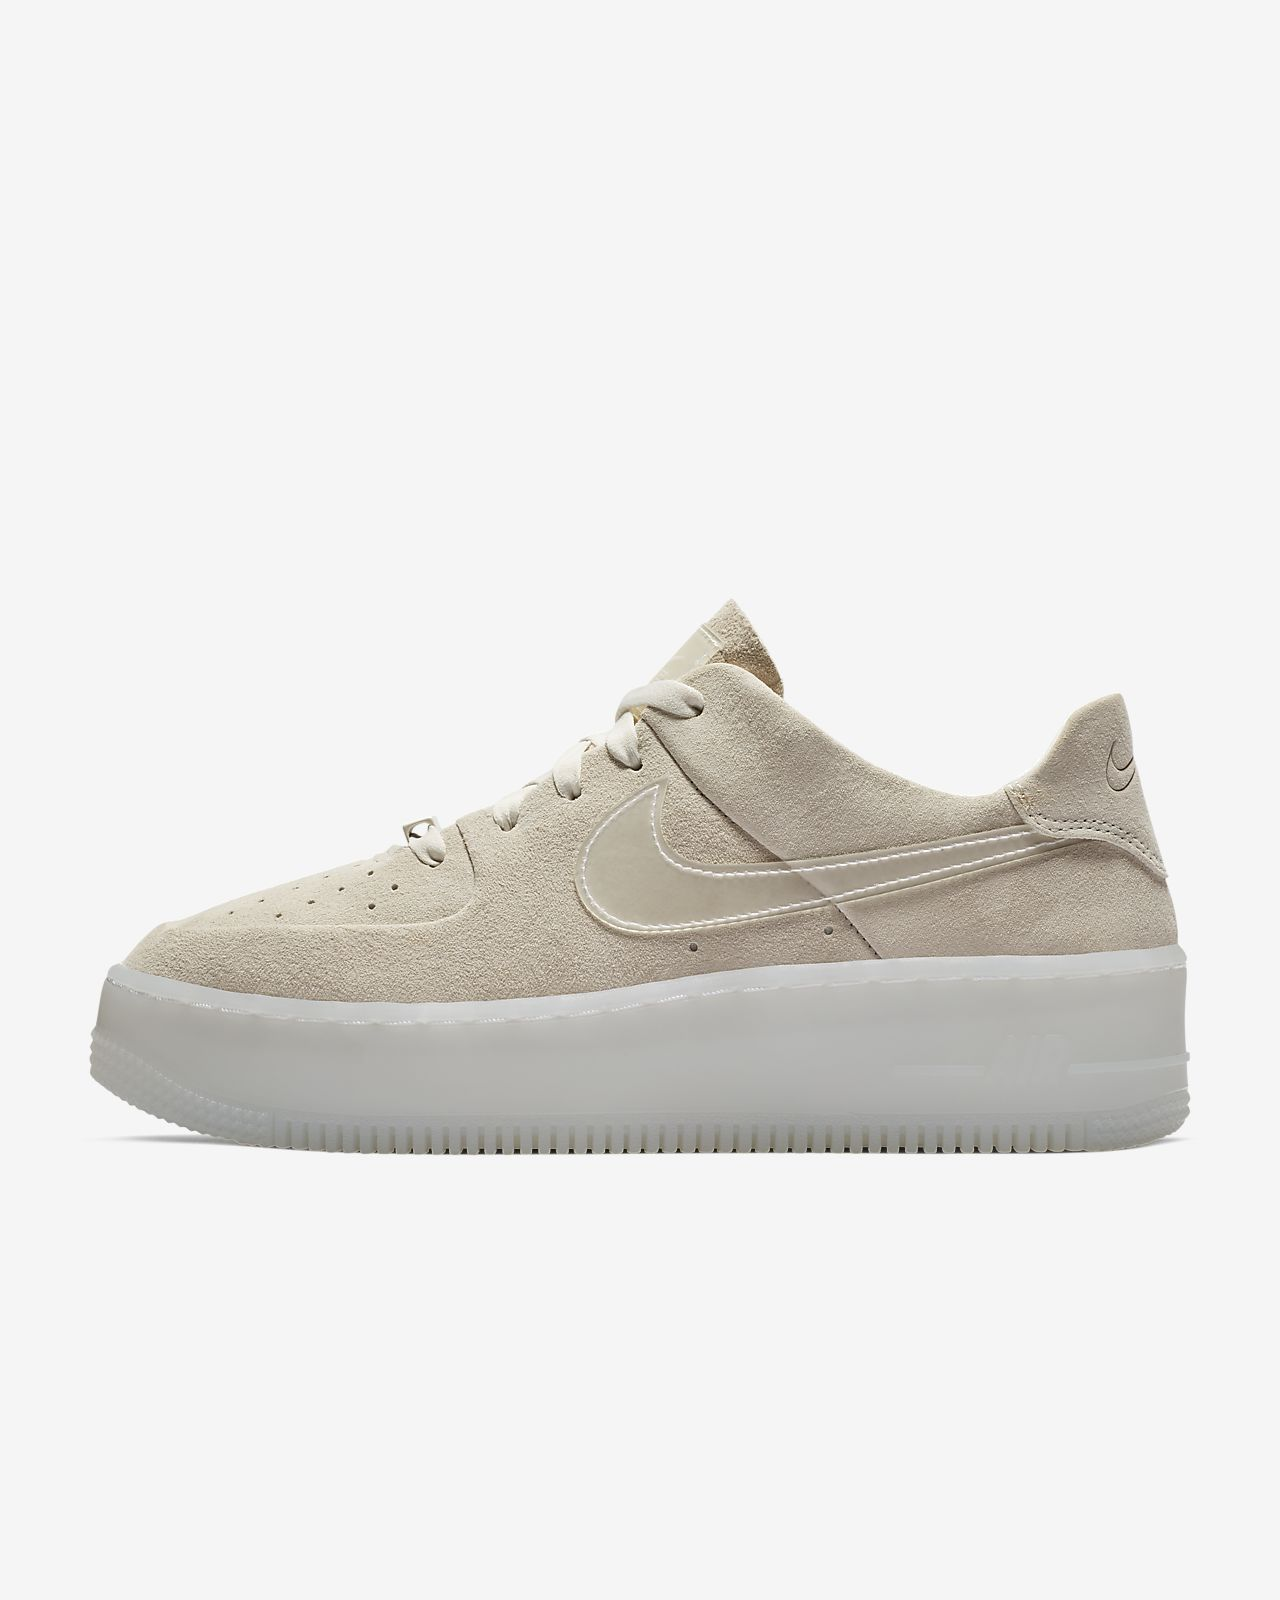 brand new e162b 87fe8 ... Sko Nike Air Force 1 Sage Low LX för kvinnor